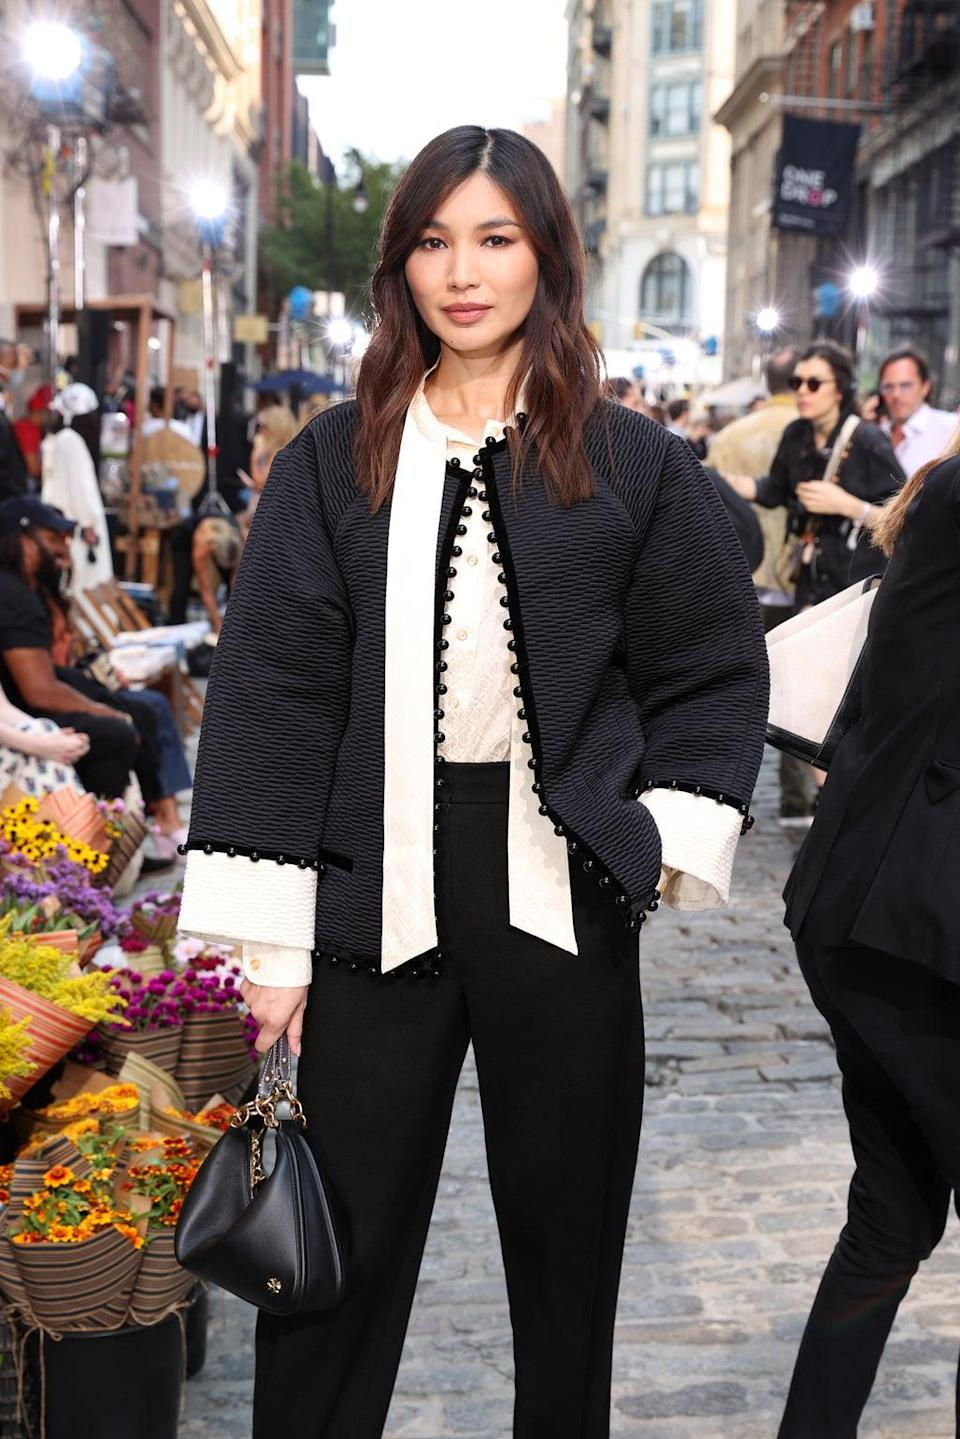 Gemma Chan attends the Tory Burch Spring/Summer 2022 Collection (Getty Images for Tory Burch)